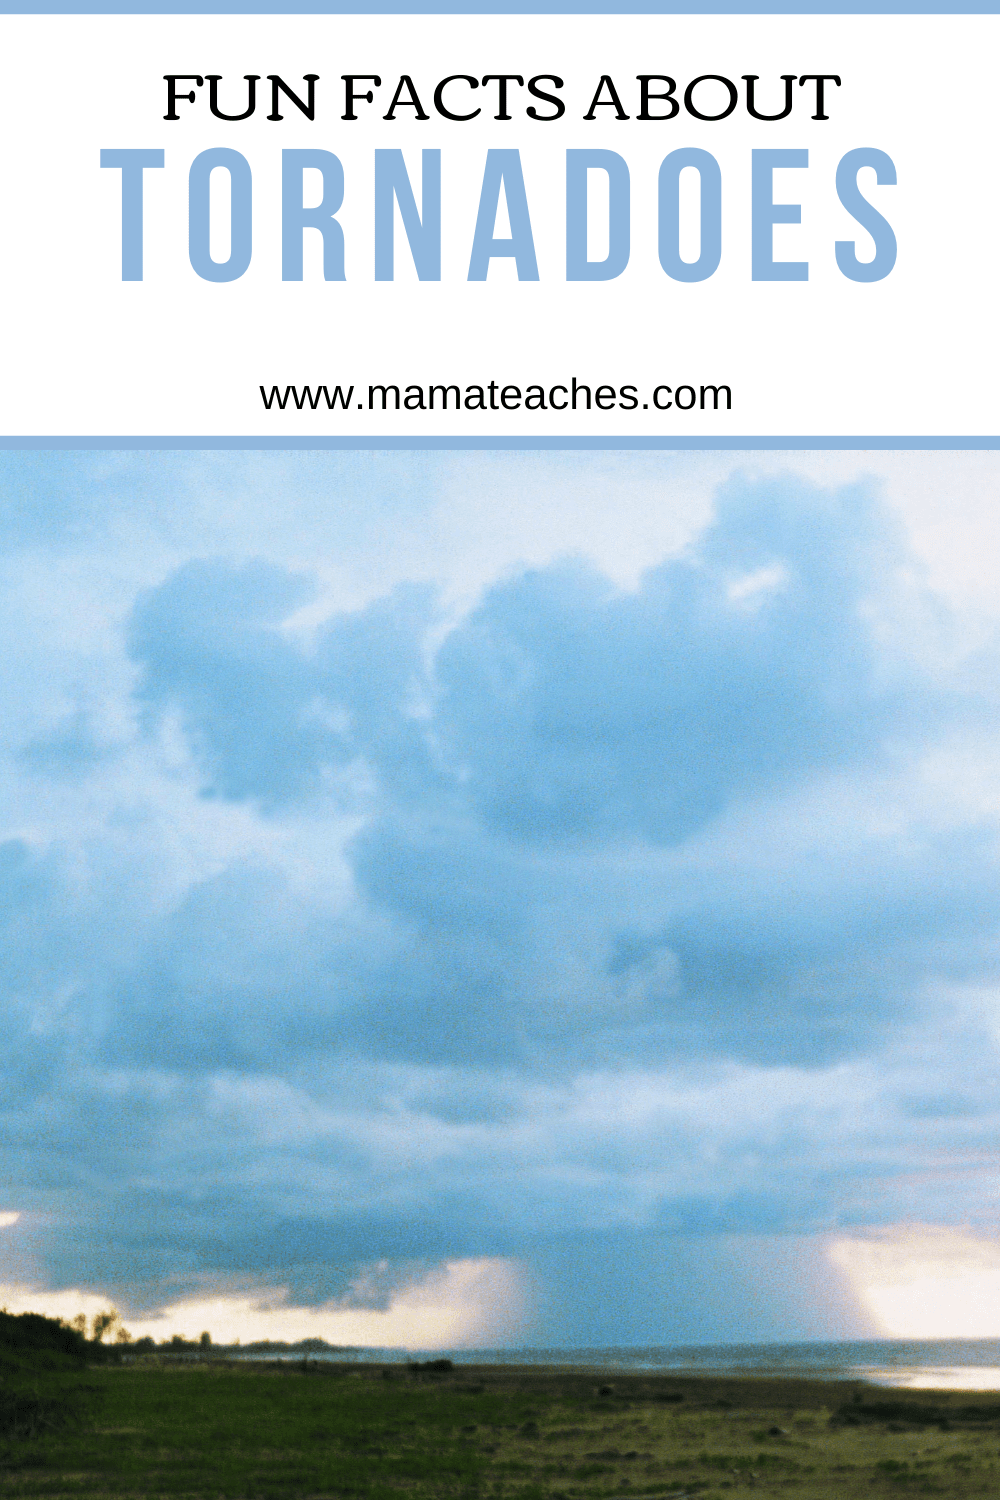 Fun Facts About Tornadoes